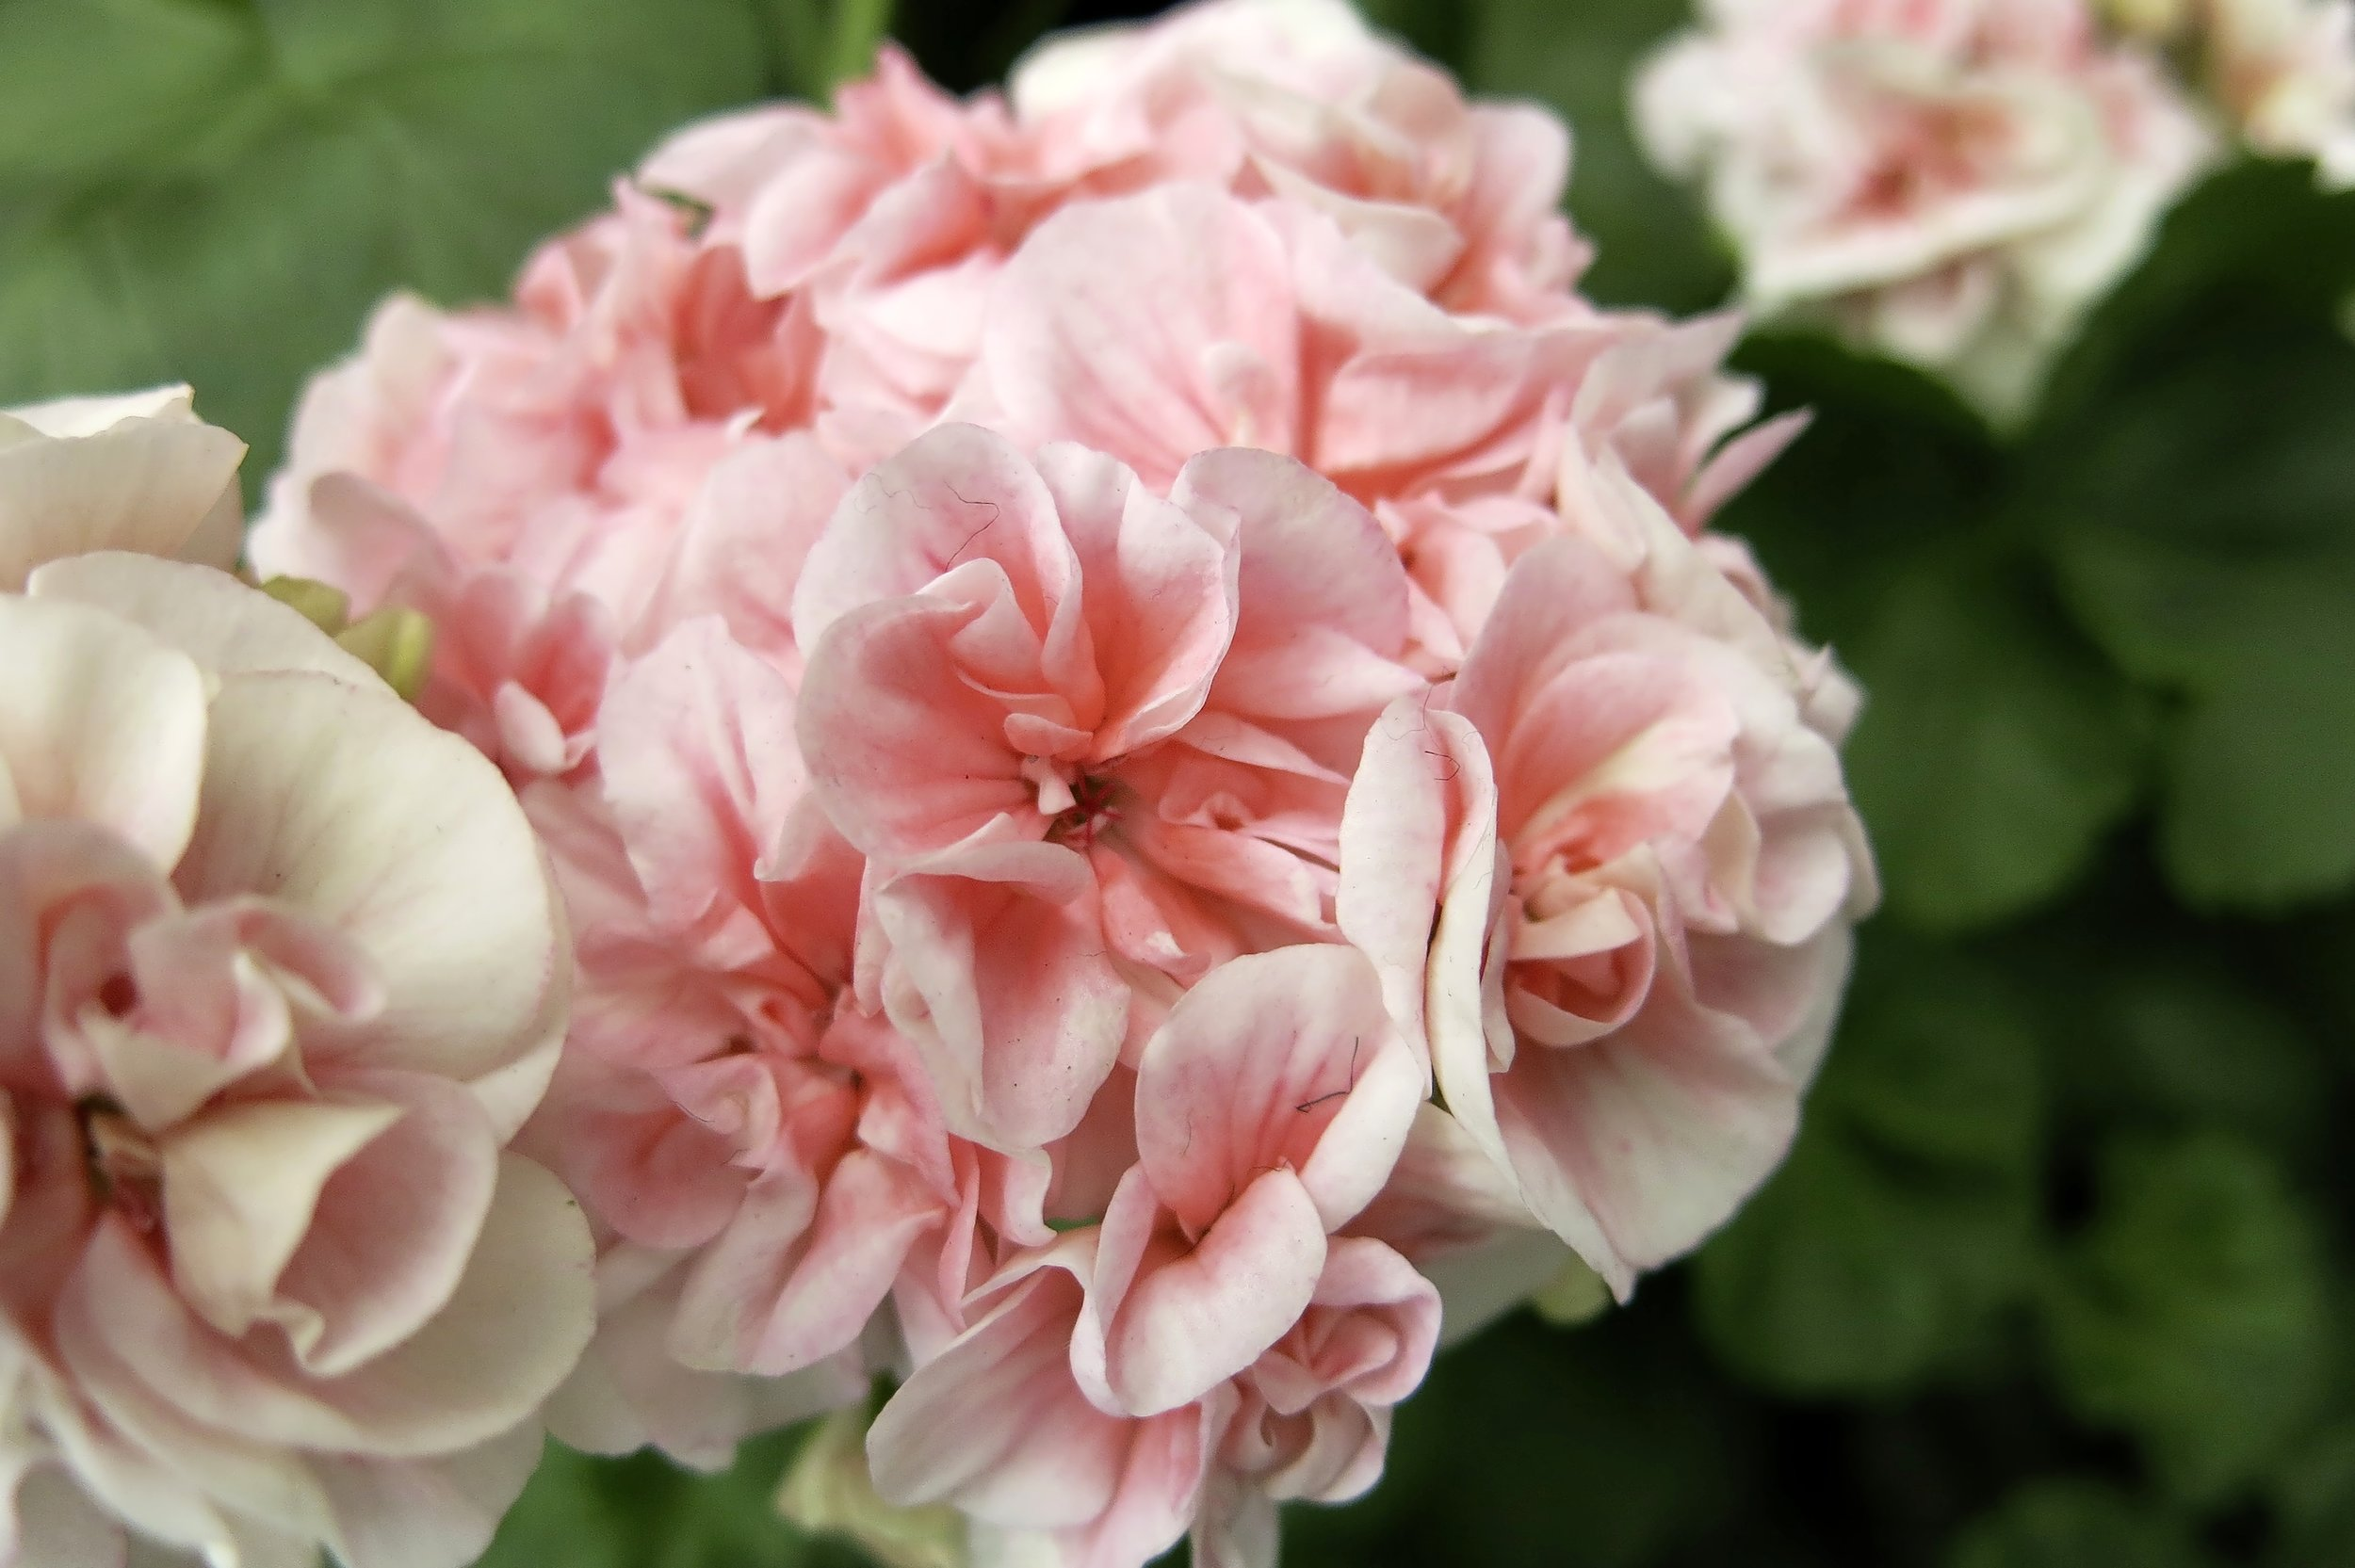 'Pink Raspail' was saved from destruction by a Plant Heritage member